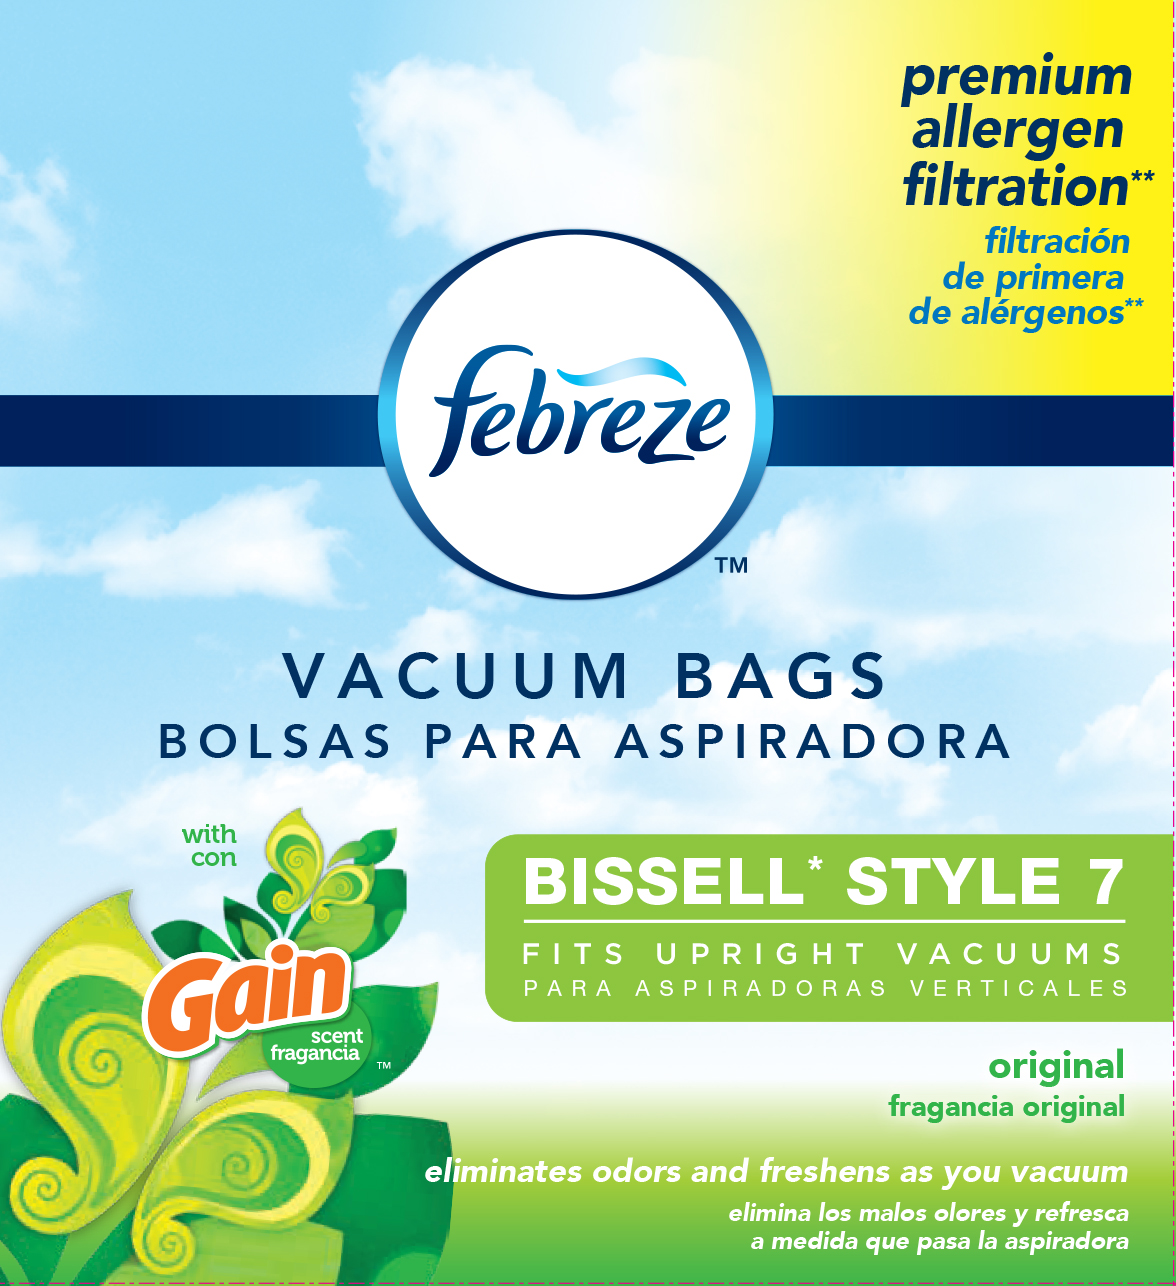 BISSELL Febreze Style 7-Bag with Gain Scent, 3 pk, 17F9G